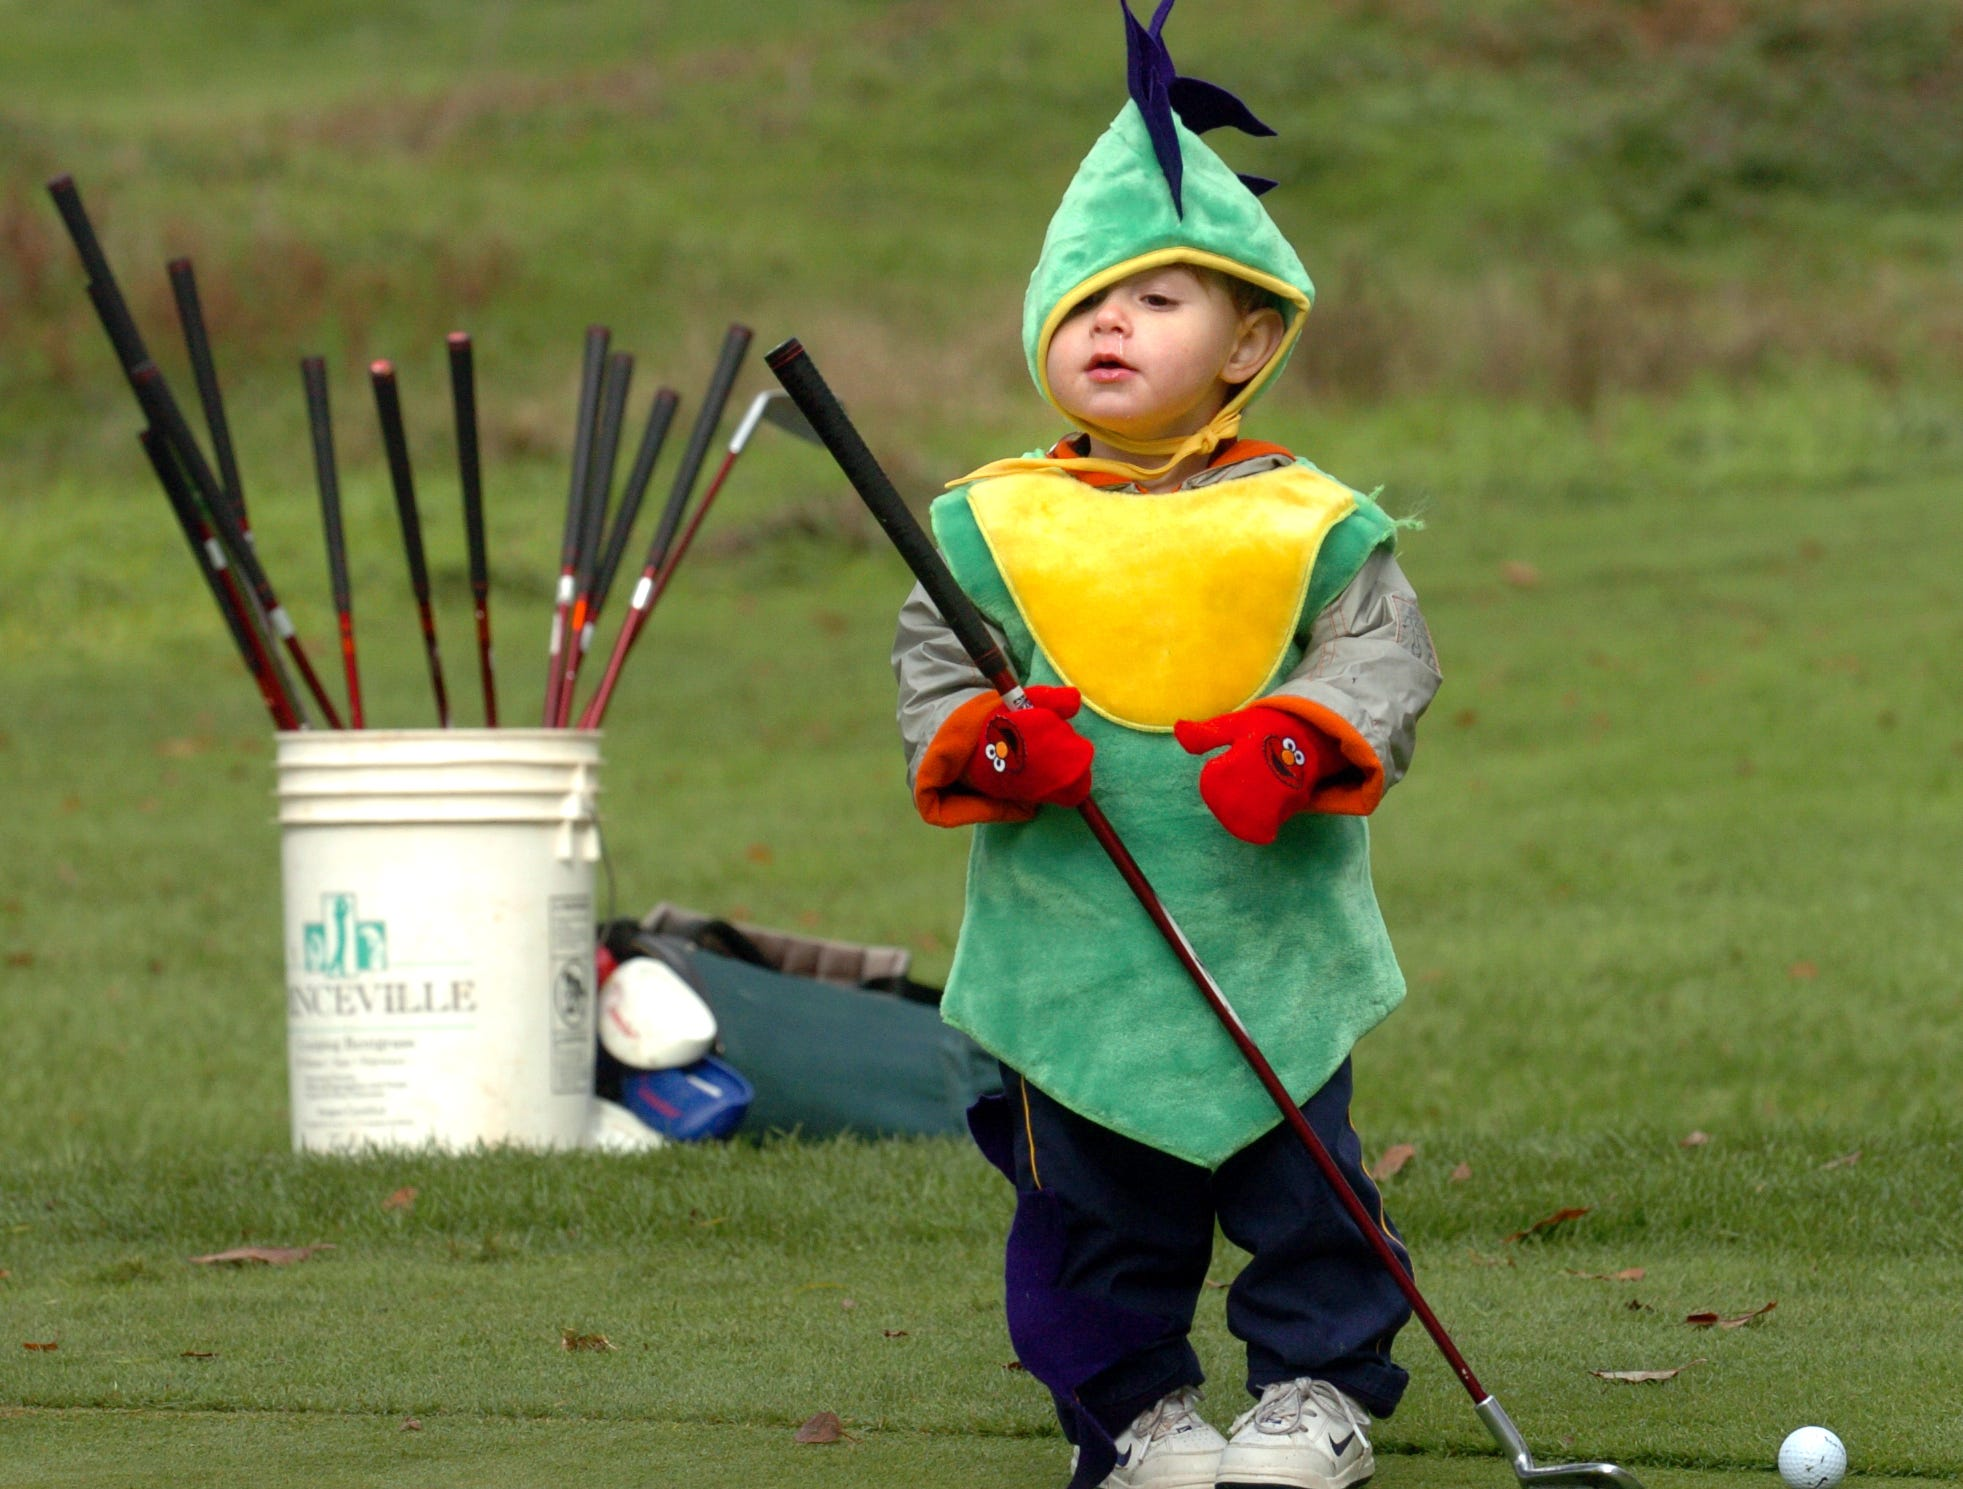 2005: 18-month-old Luca Richmond of the Town of Maine sports a dragon costume as he works on his golf skills during The First Tee of Hiawatha Landing's Halloween party Saturday morning.